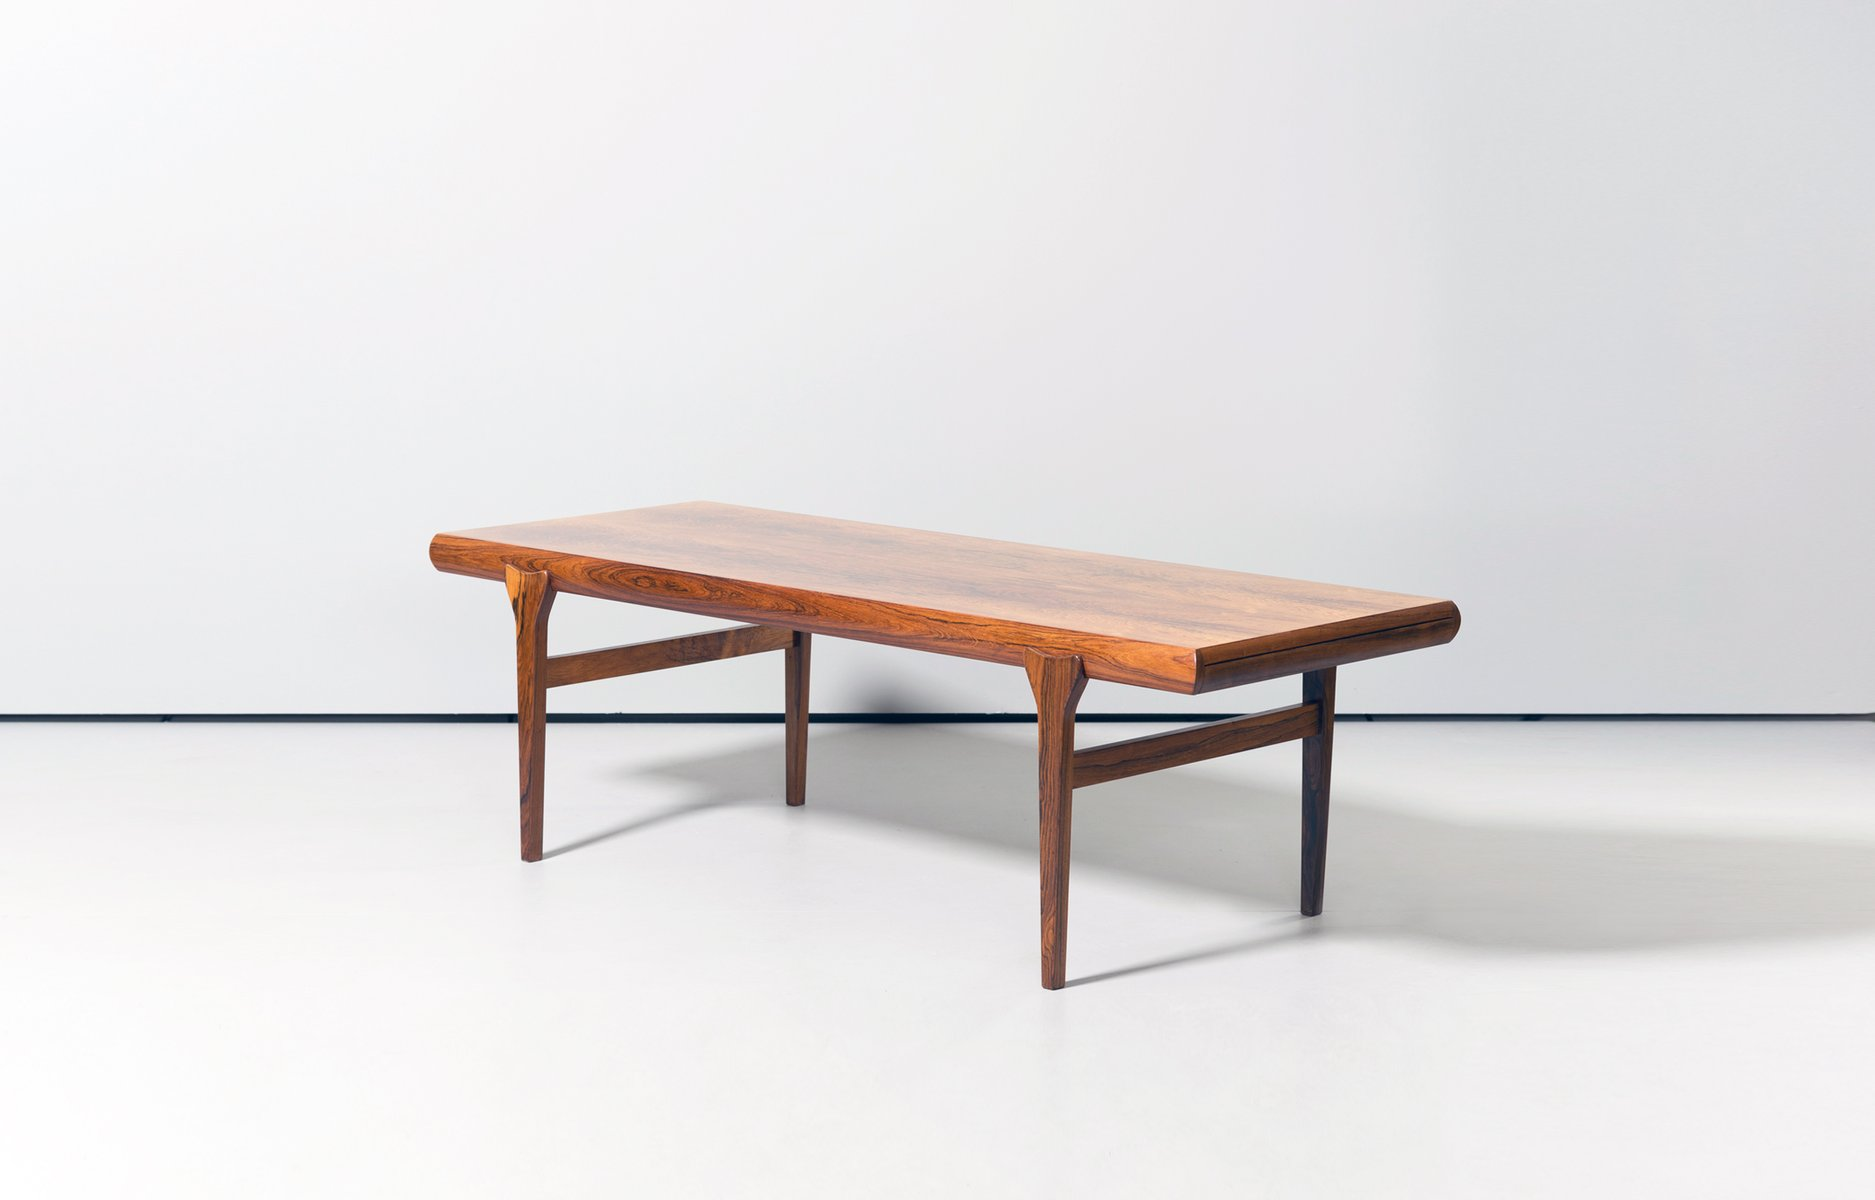 Scandinavian Rosewood Coffee Table By Johannes Andersen For Silkeborg 1960 For Sale At Pamono